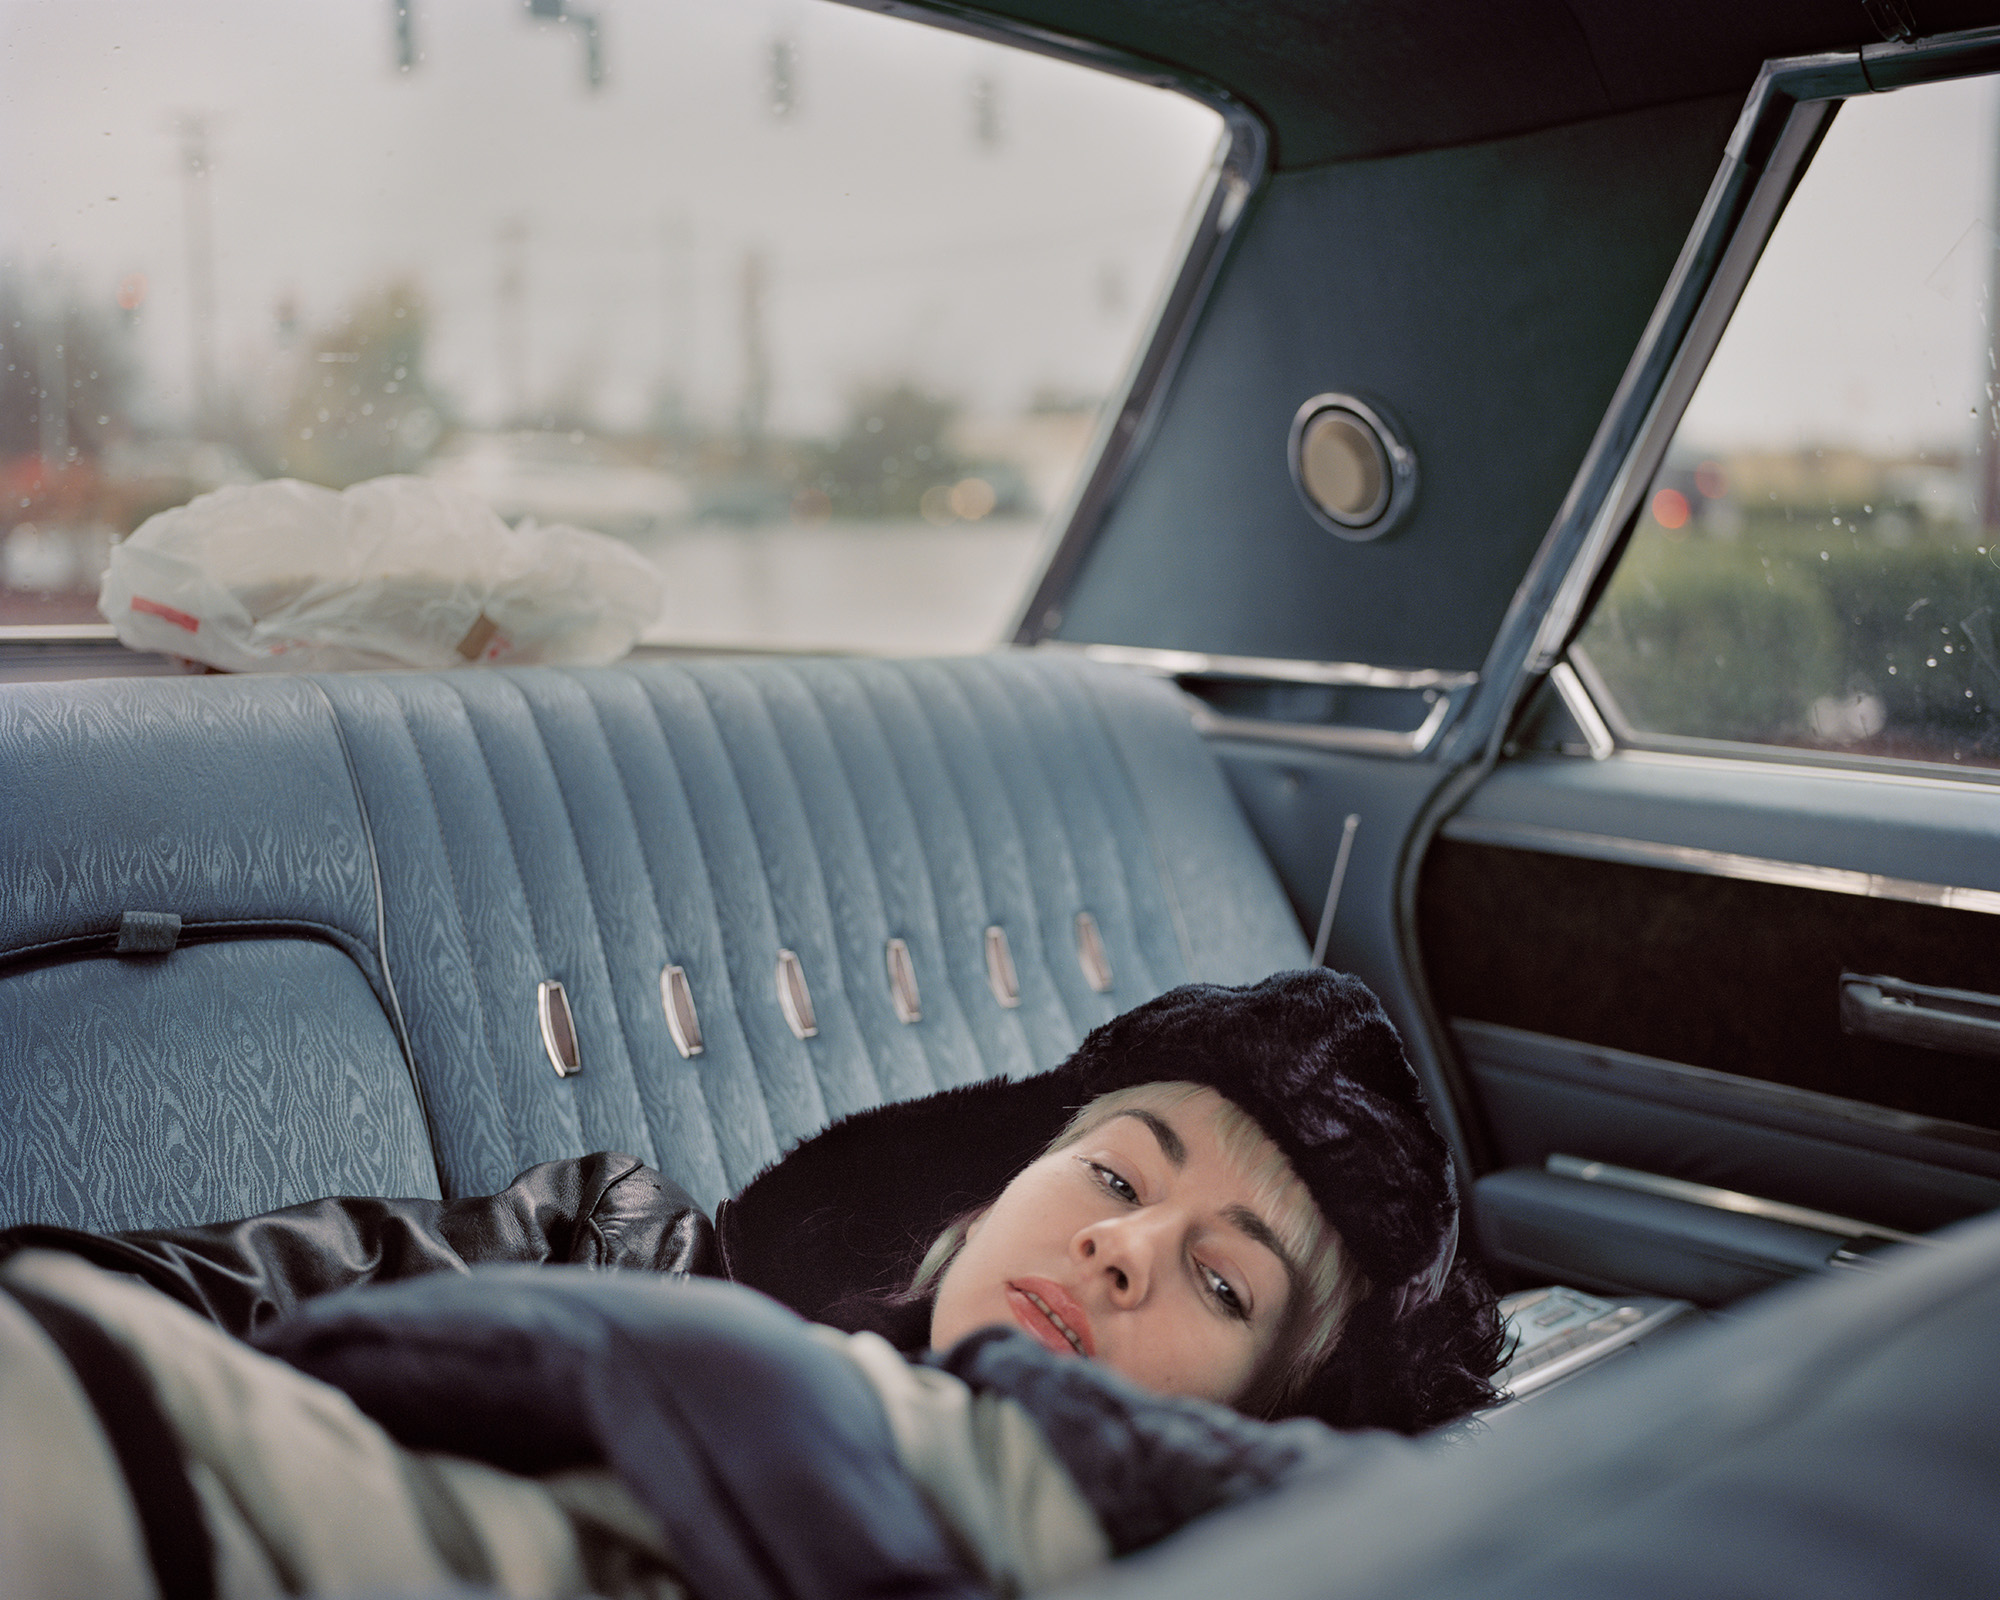 'Backseat' from Jenny Riffle's The Sound of Wind series